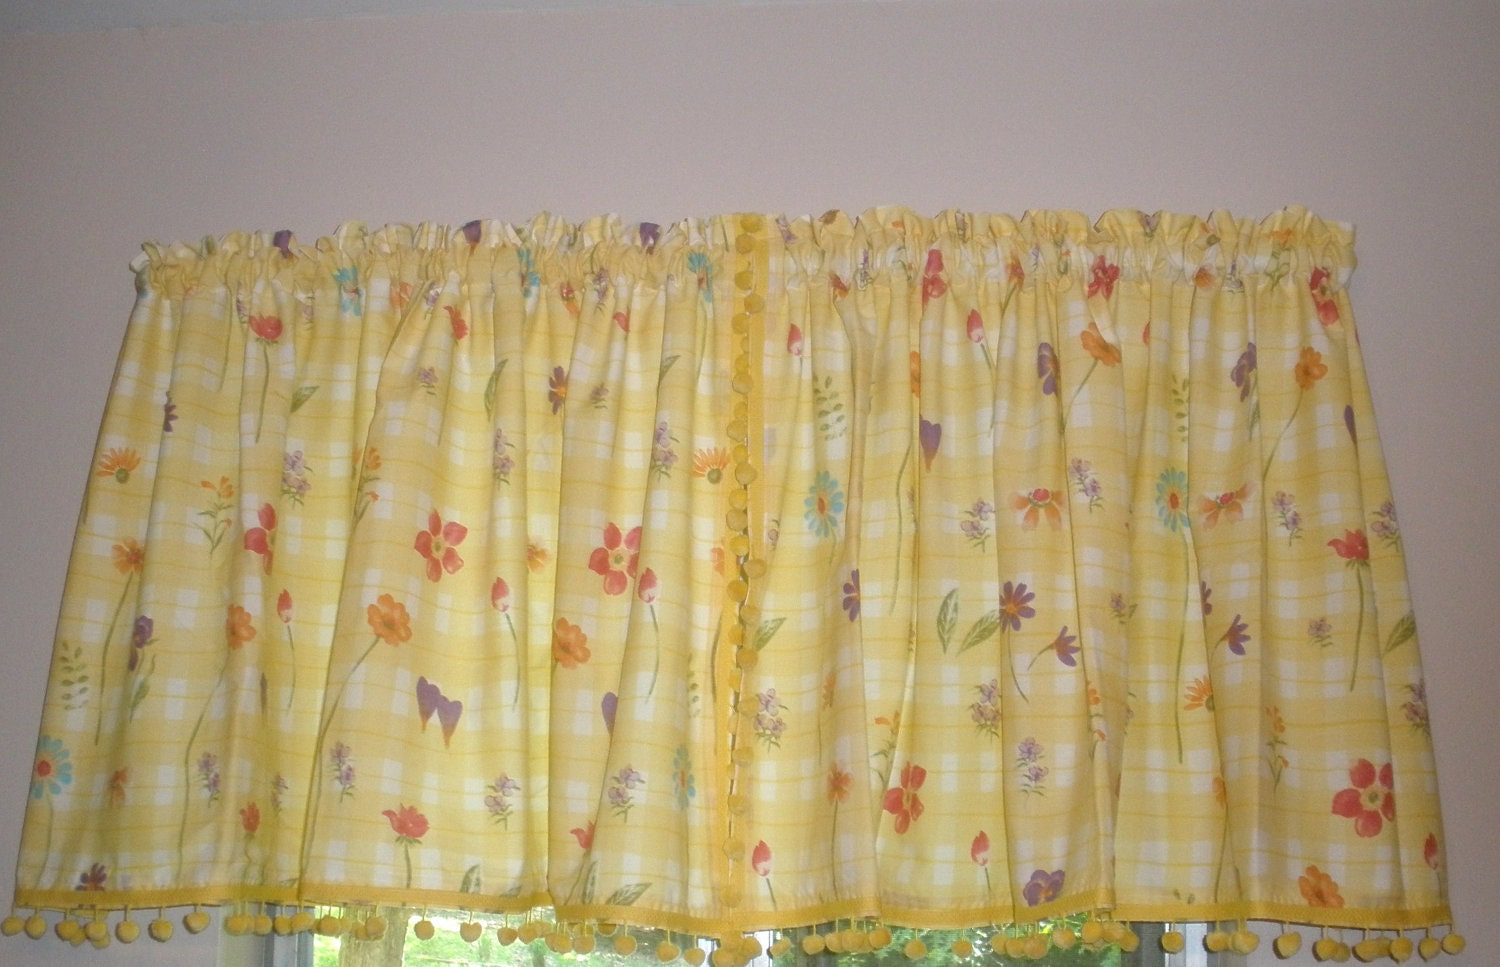 vintage kitchen curtains yellow and white with flowers and